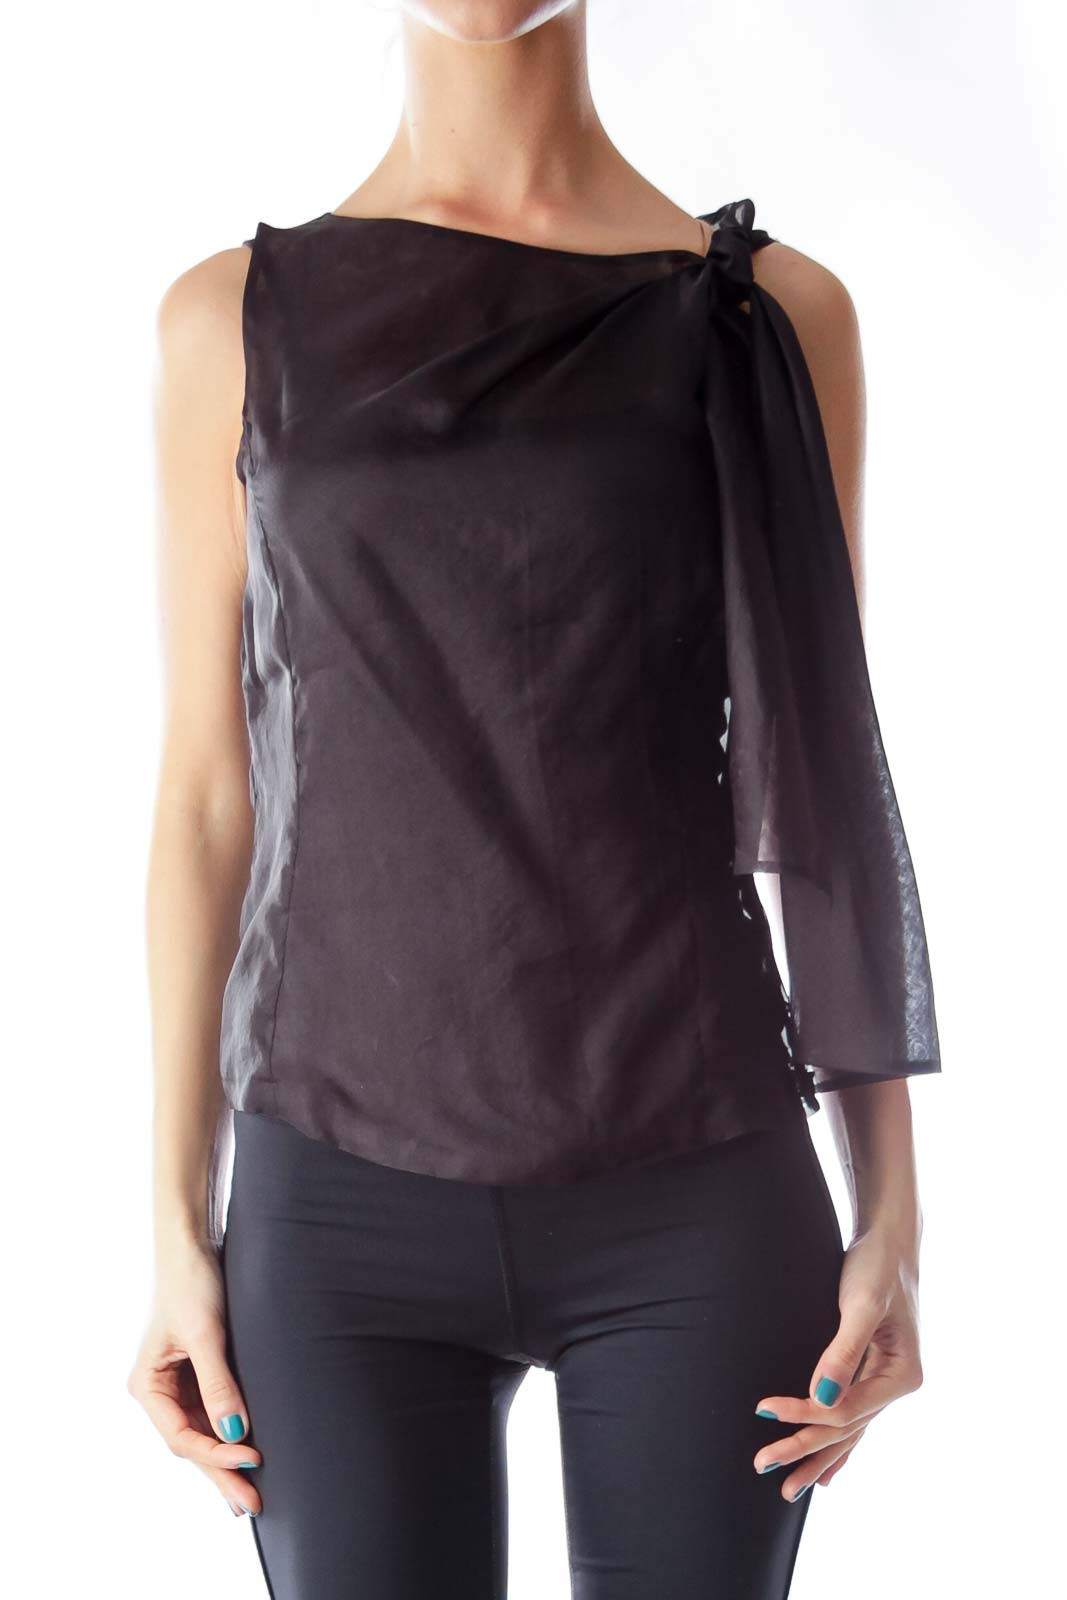 Black See Trough Shirt Front